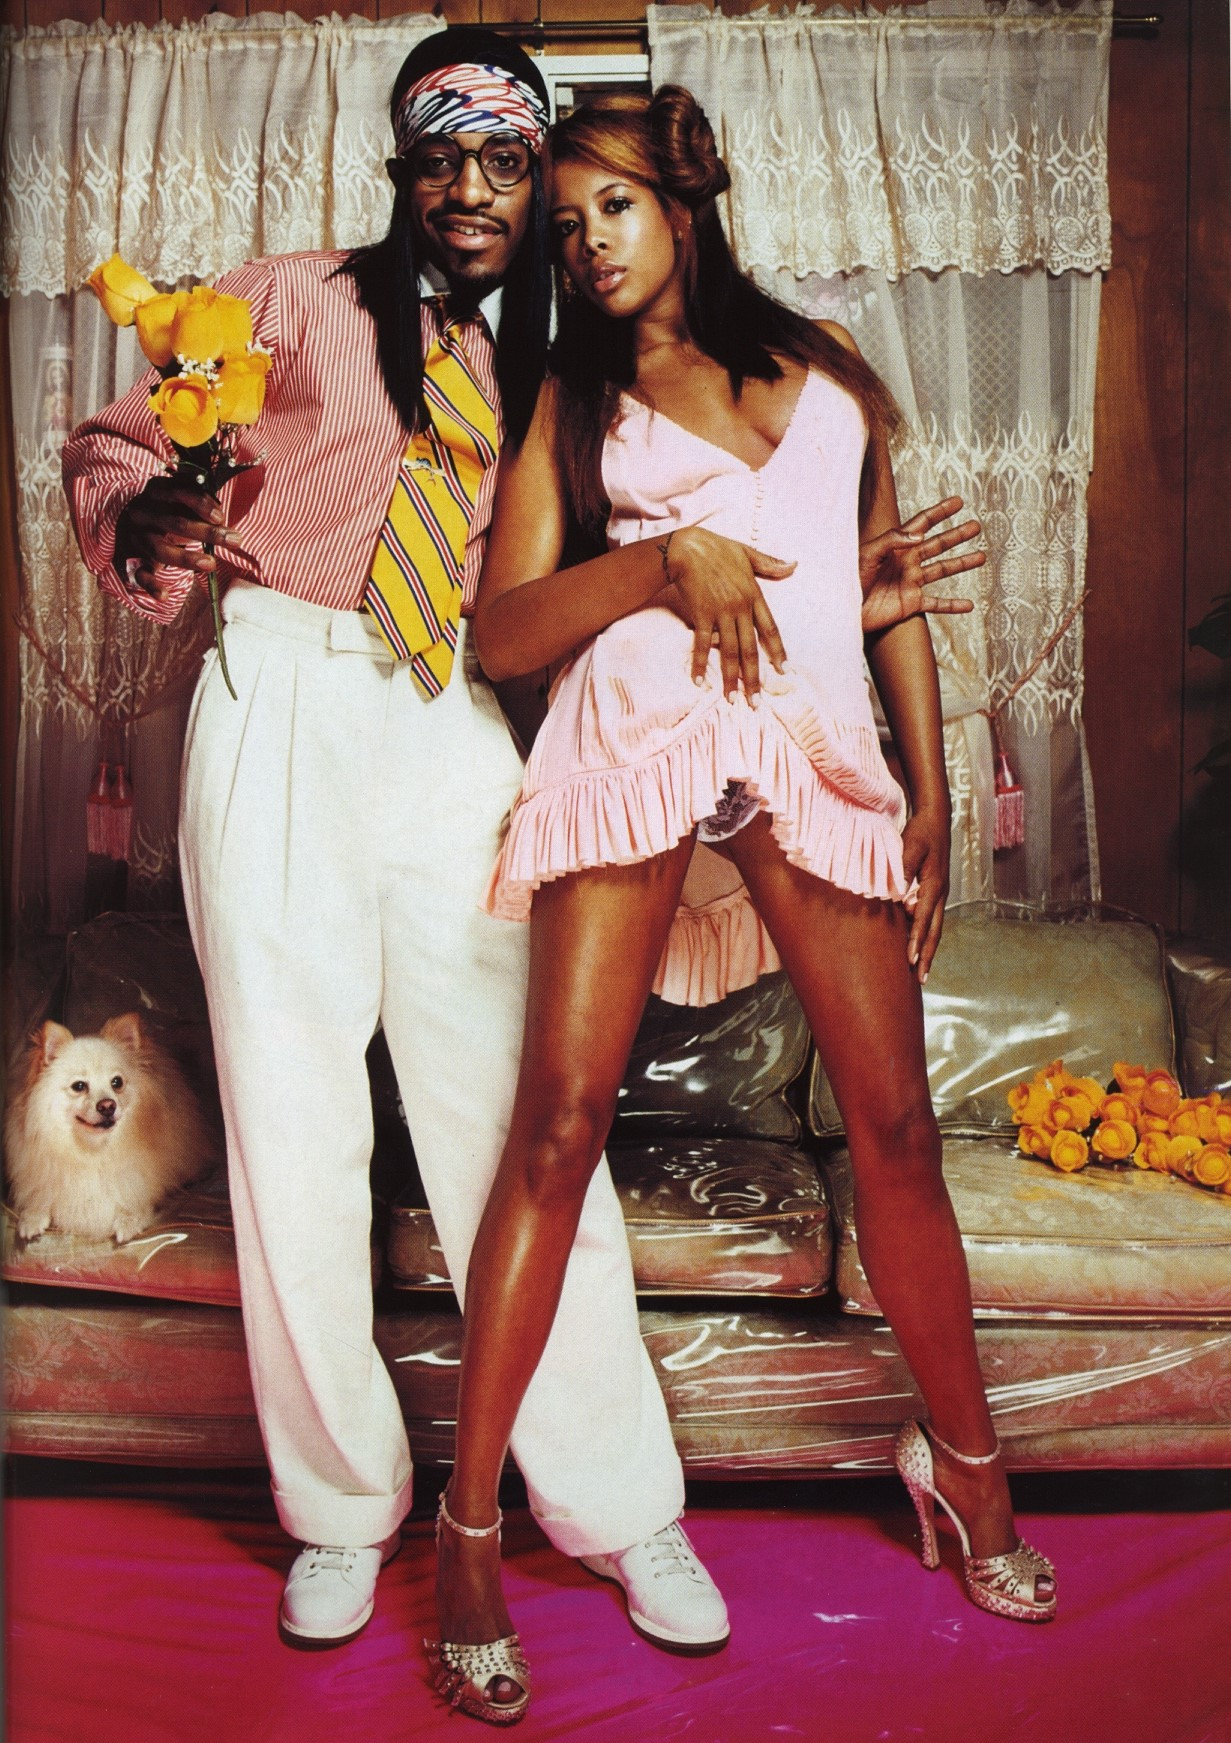 KELIS & ANDRE 3000 | PHOTOGRAPHY DAVID LACHAPELLE | THE FACE N.88 | MAY 2004